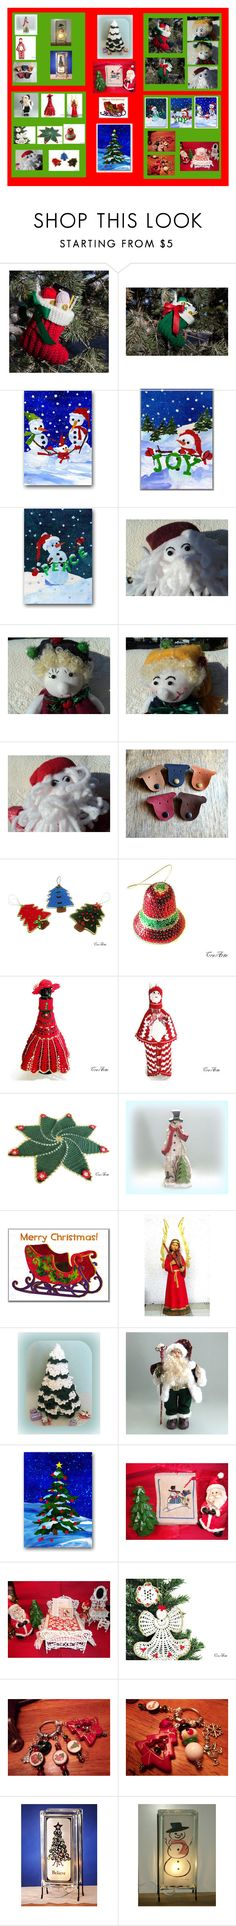 """""""Merry Christmas From Treasure's Cove!!"""" by sharon-pipkin on Polyvore featuring interior, interiors, interior design, home, home decor, interior decorating and Angelo"""